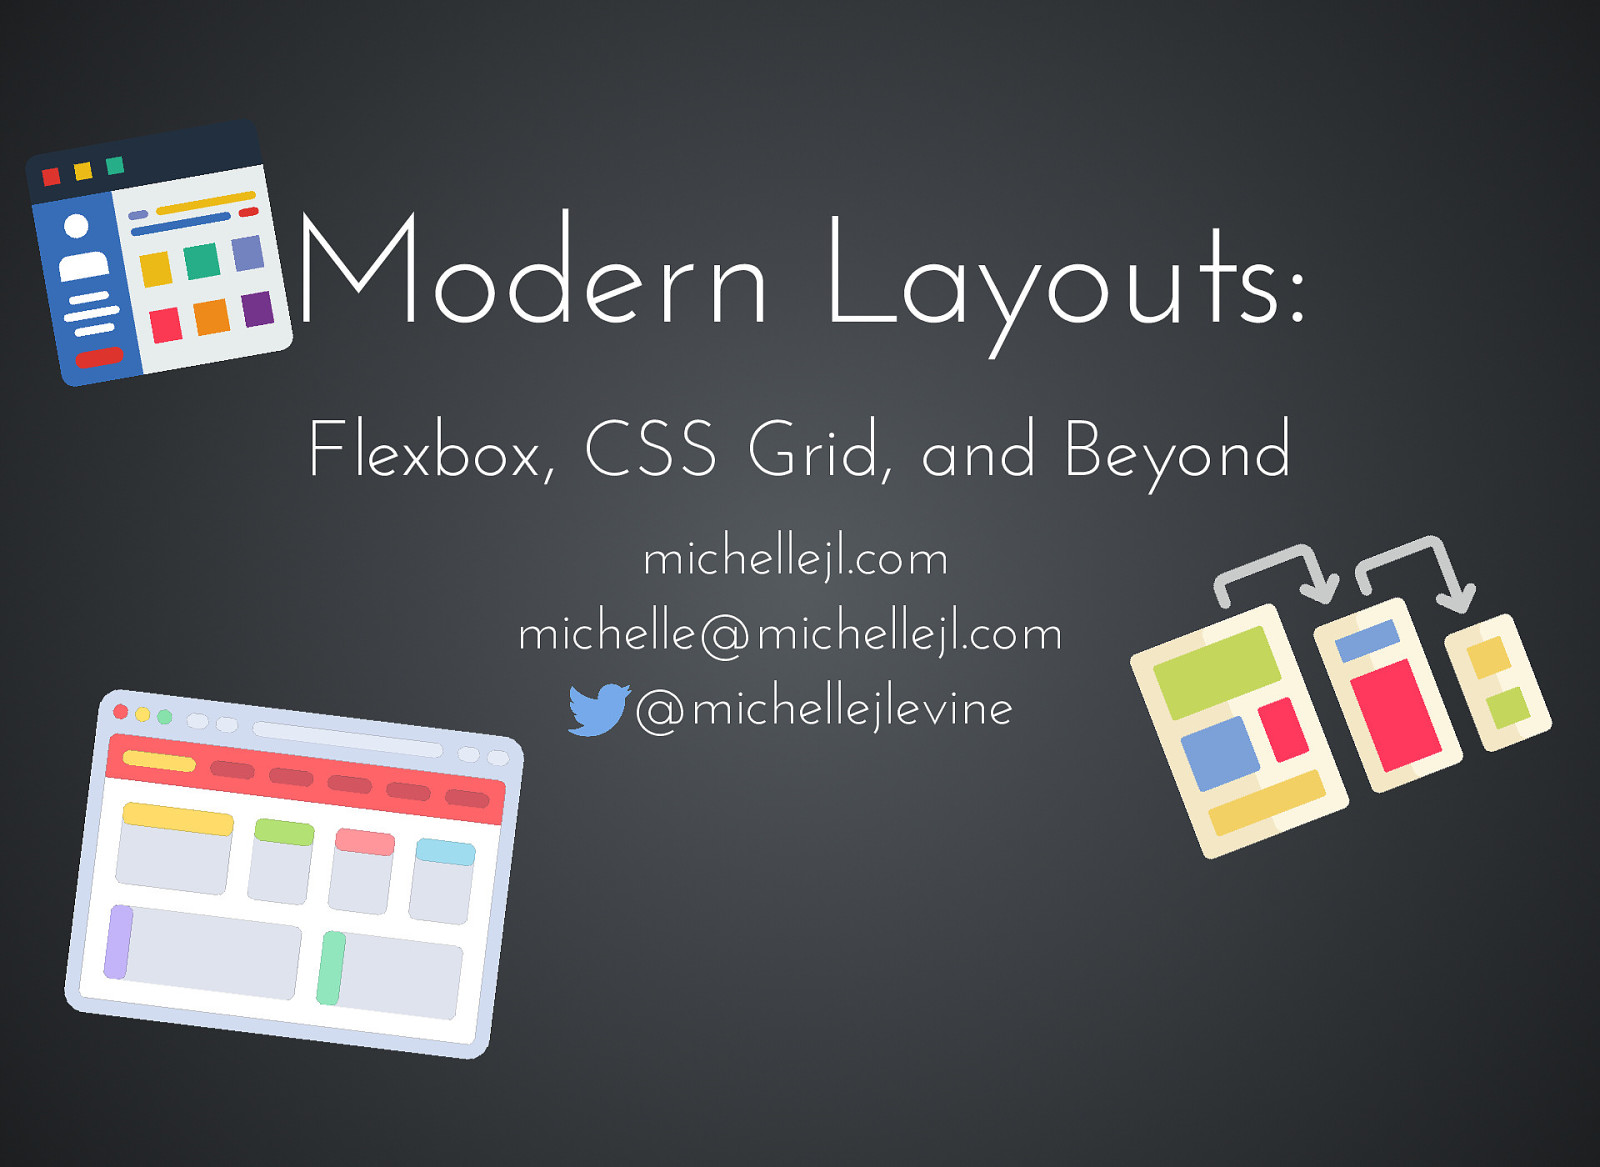 Modern Layouts: Flexbox, CSS Grid, and Beyond